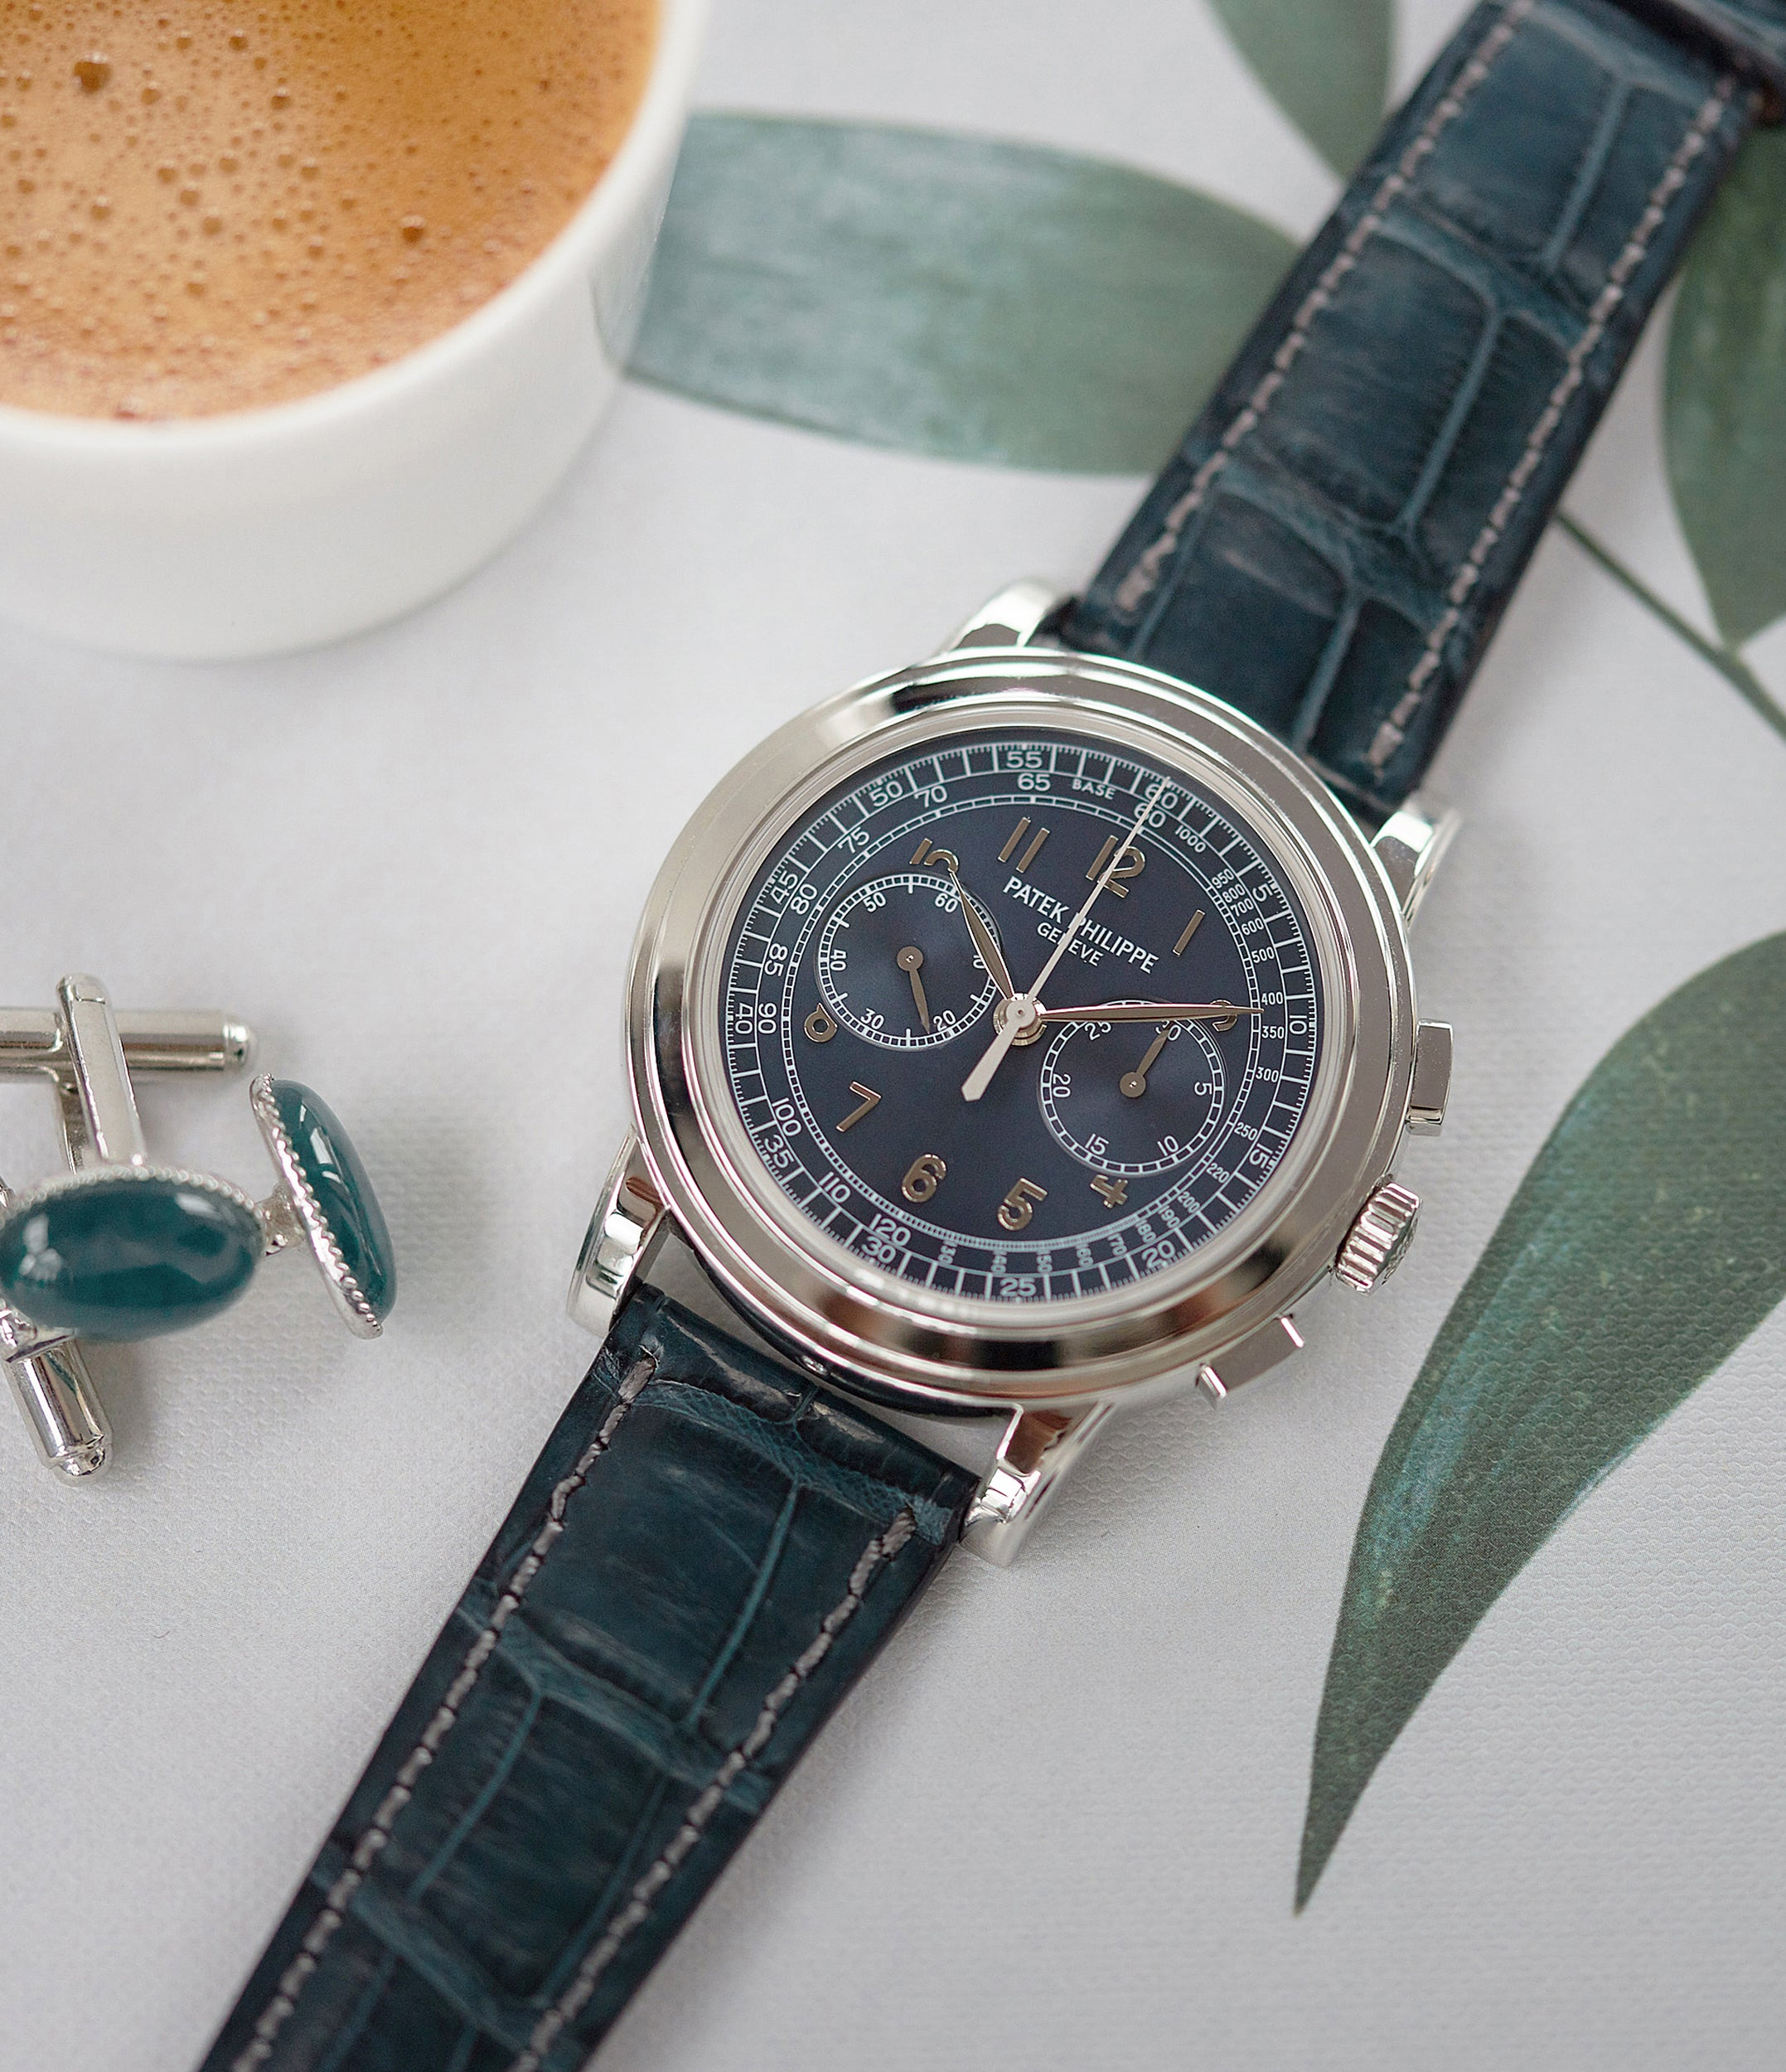 collect rare Patek Philippe 5070P Chronograph rare platinum 42mm luxury watch for sale online at A Collected Man London UK specialist of rare watches